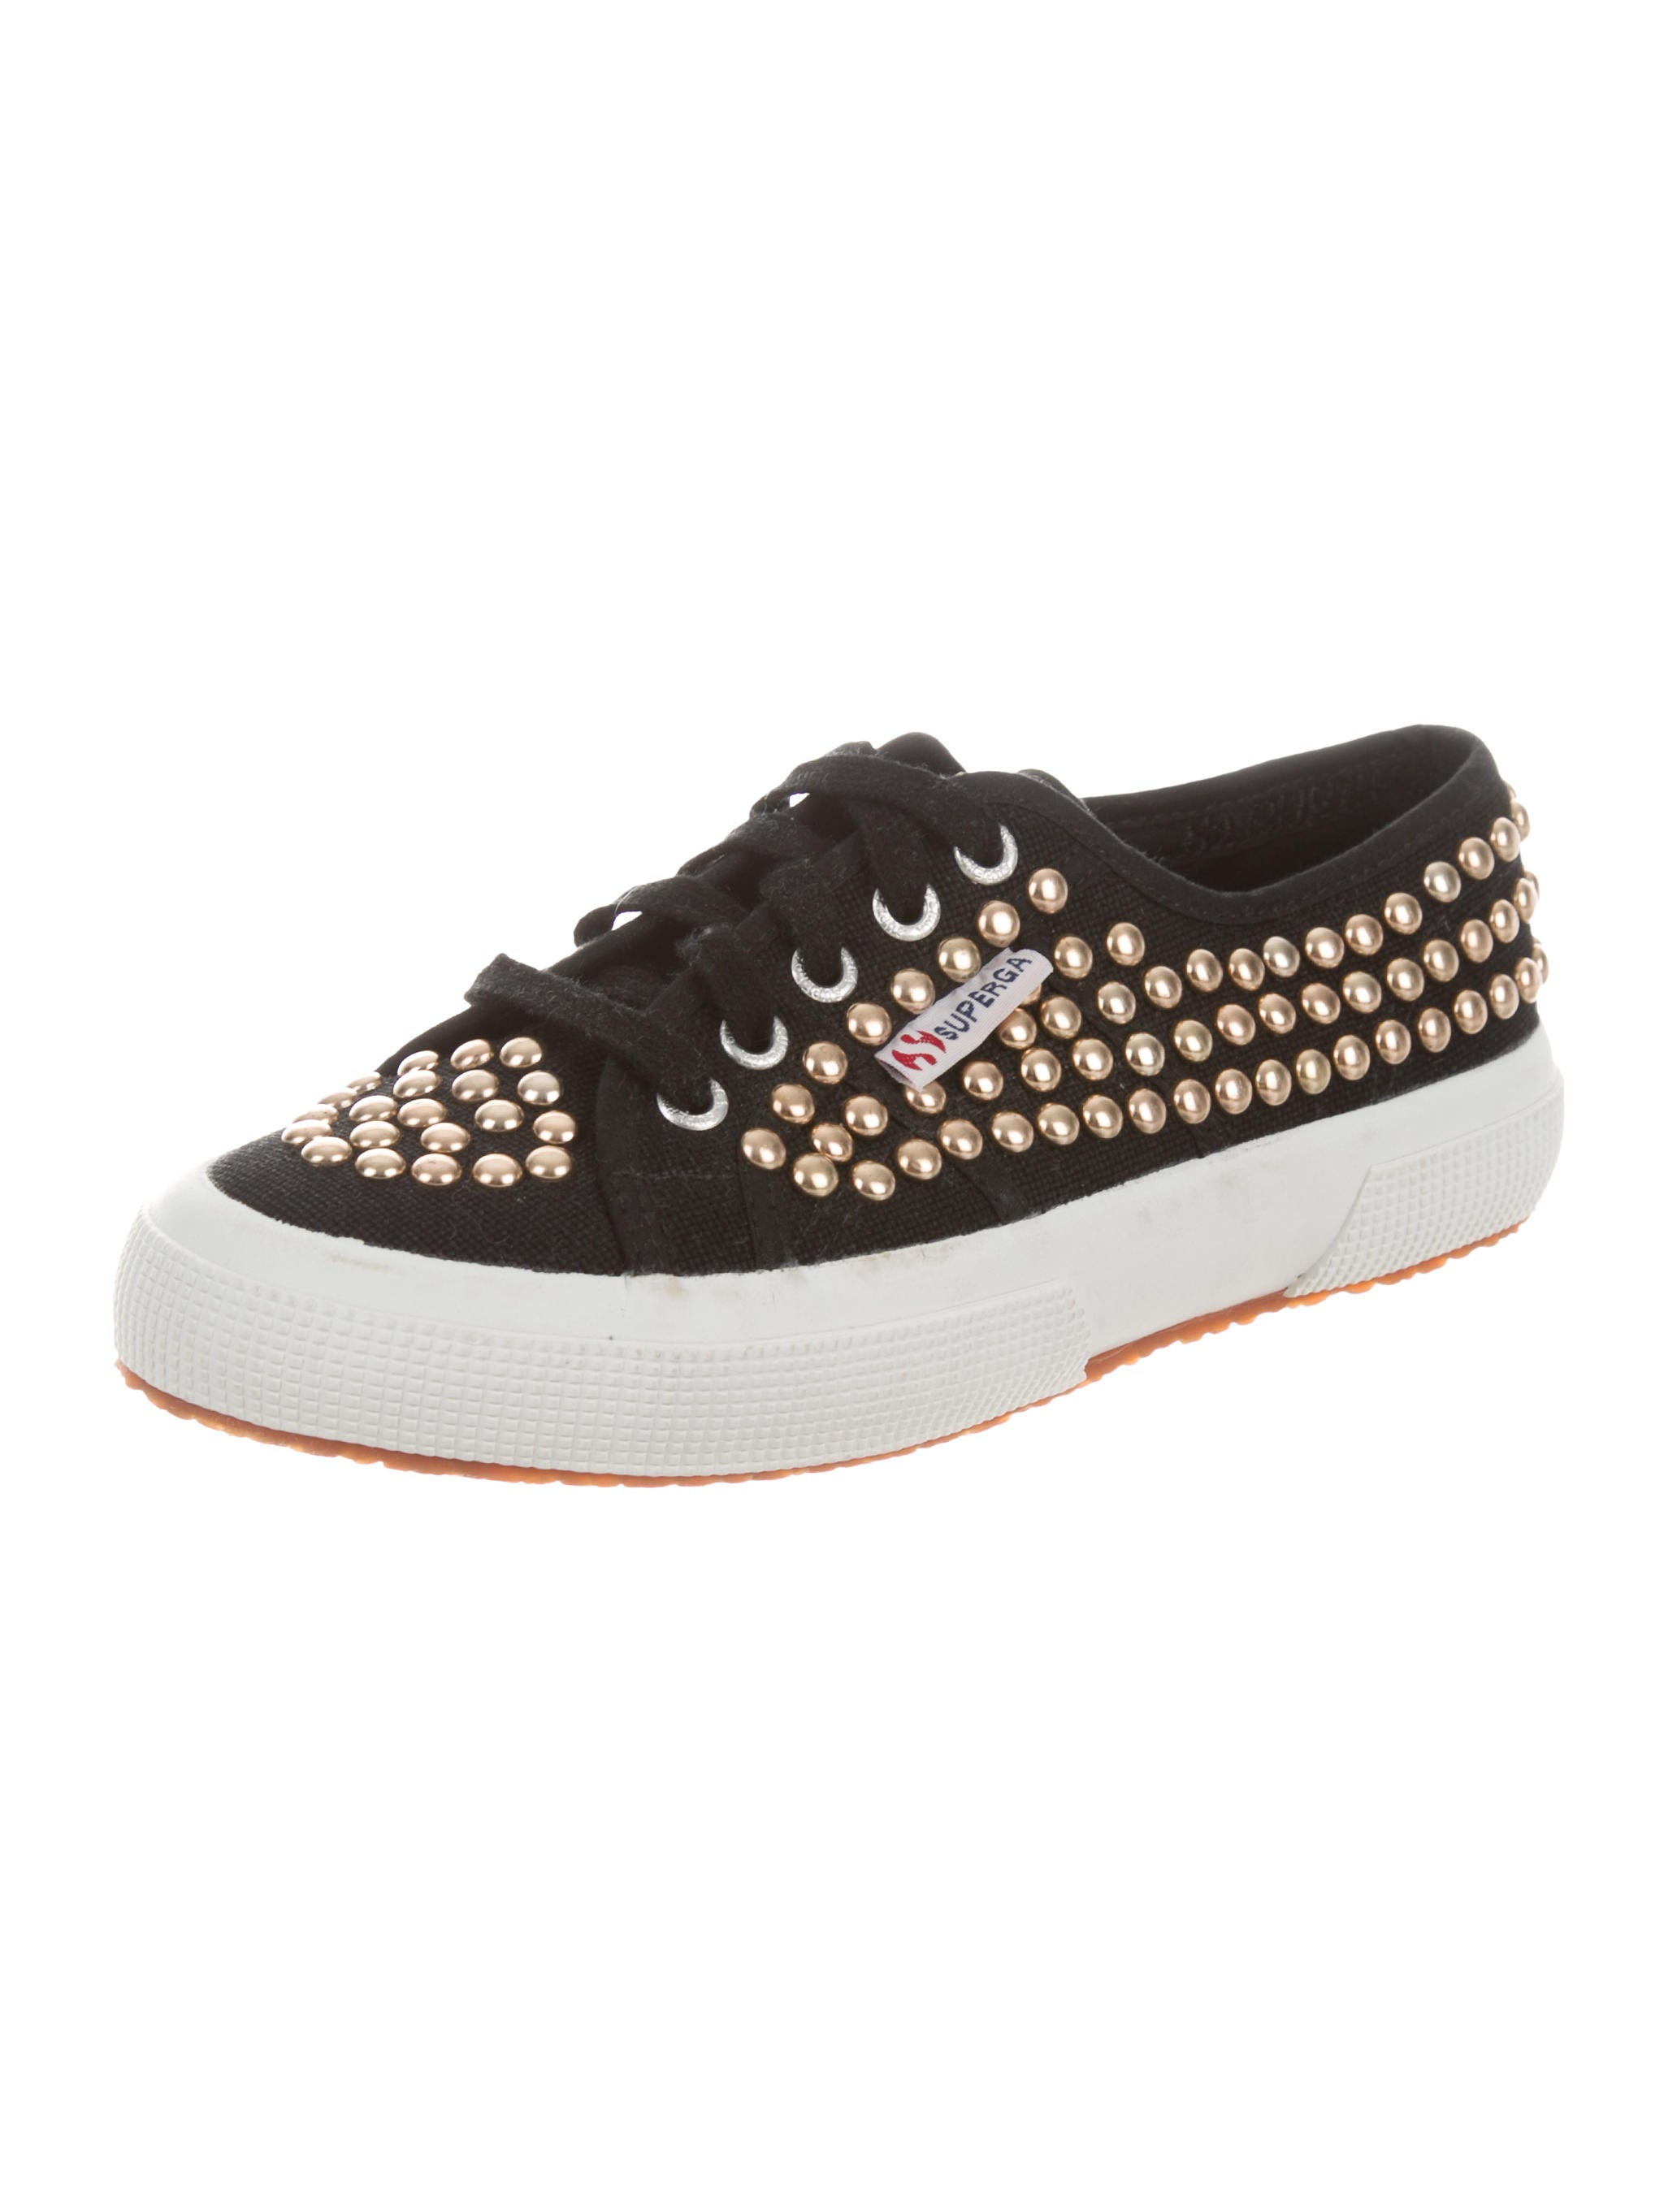 Canvas Realreal Sneakers Vrxasq Wspga20207 The Shoes Superga Studded wAvFY